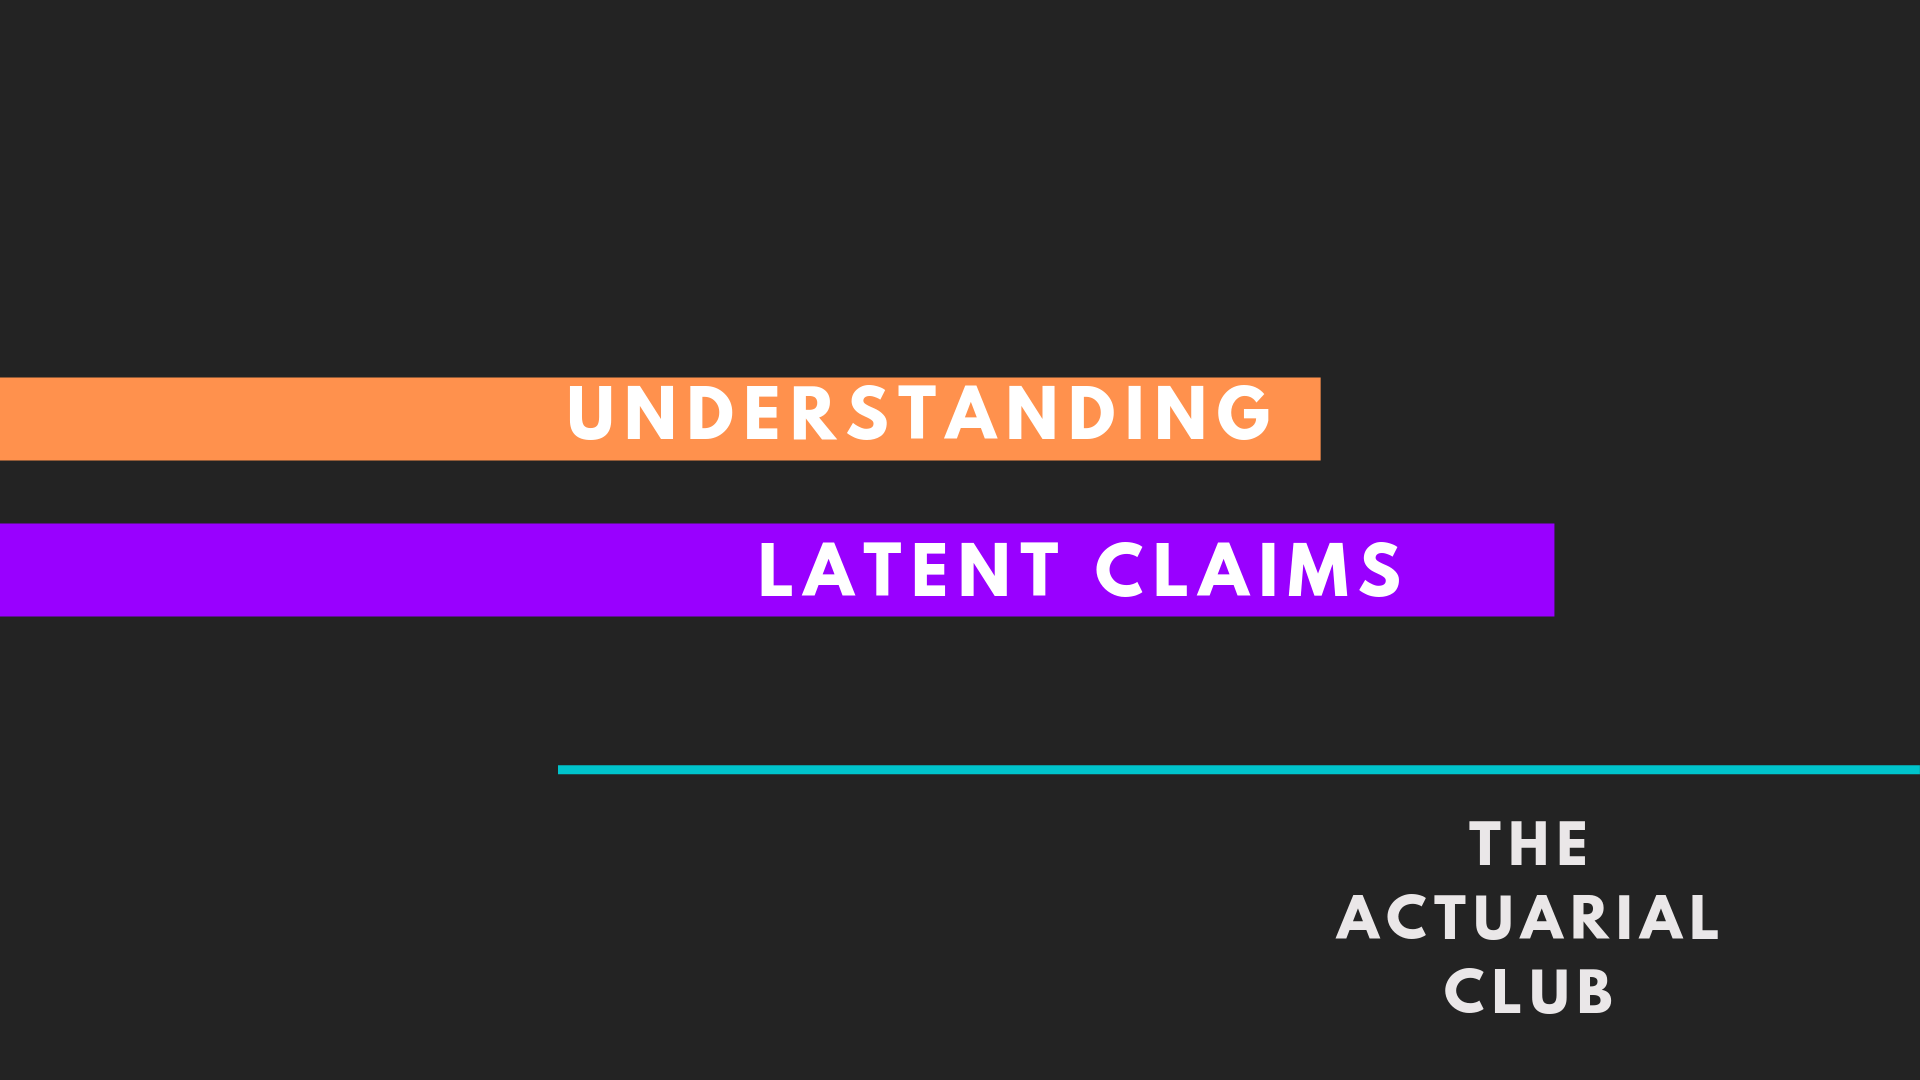 Latent claims: Claims which insurer not get to decide